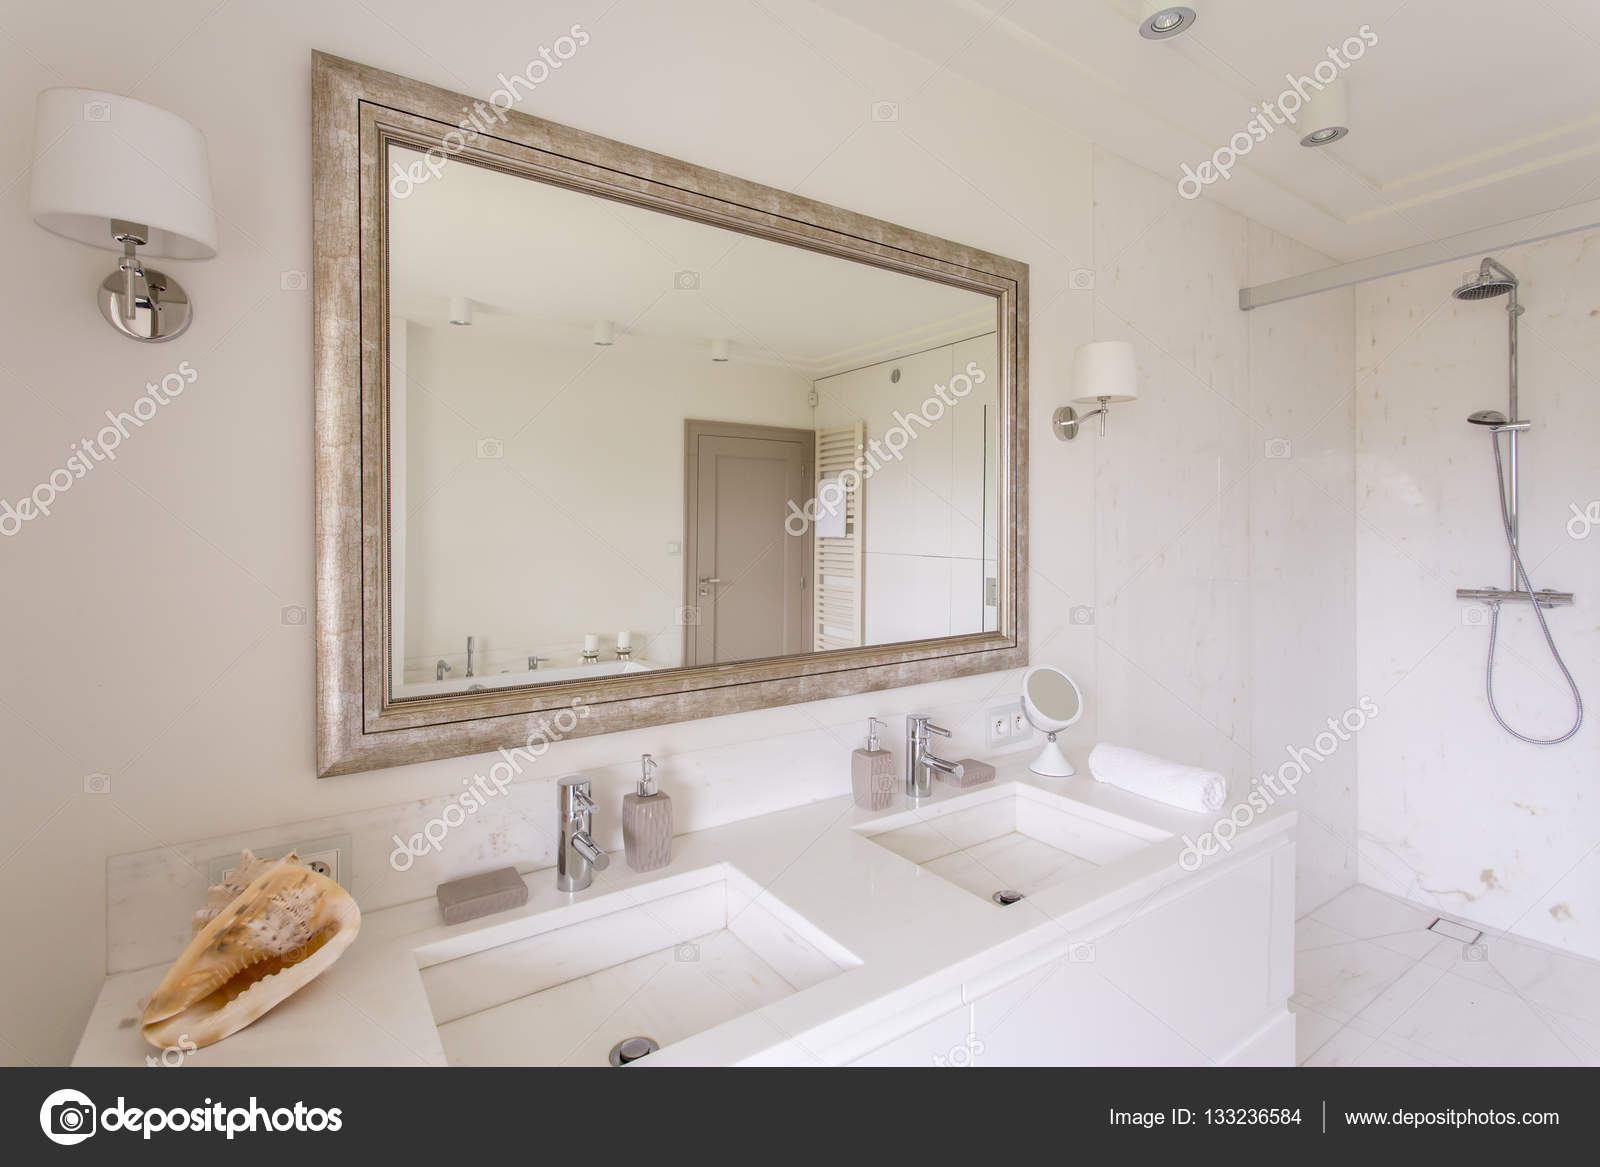 Minimalist Bathroom With Large Mirror In A Decorative Frame And Two Marble  Sinks U2014 Photo By Photographee.eu